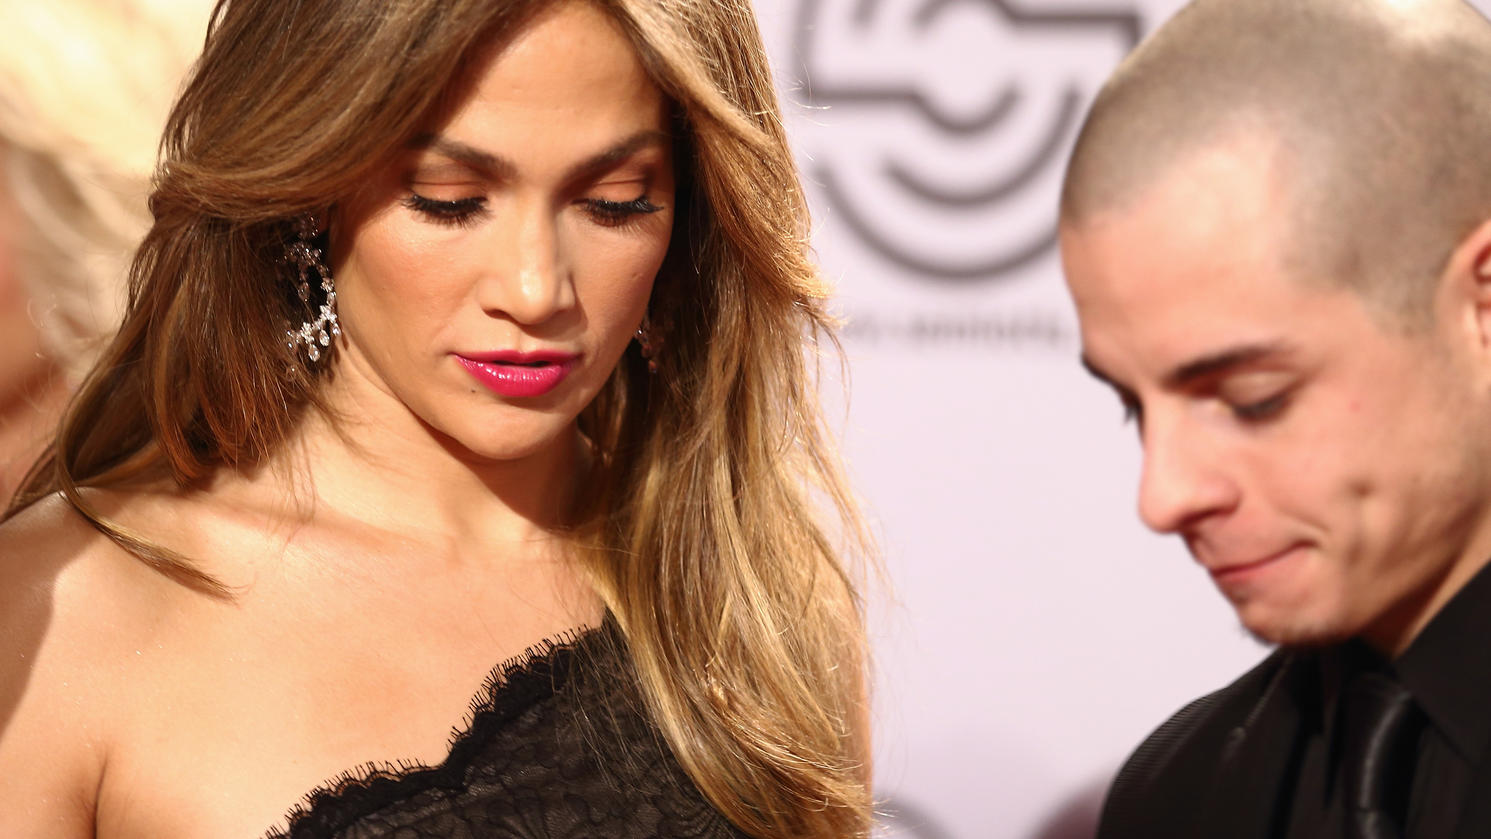 DUSSELDORF, GERMANY - OCTOBER 27:  Jennifer Lopez and partner Casper Smart attend the 21st UNESCO Charity Gala 2012 on October 27, 2012 in Dusseldorf, Germany.  (Photo by Andreas Rentz/Getty Images)